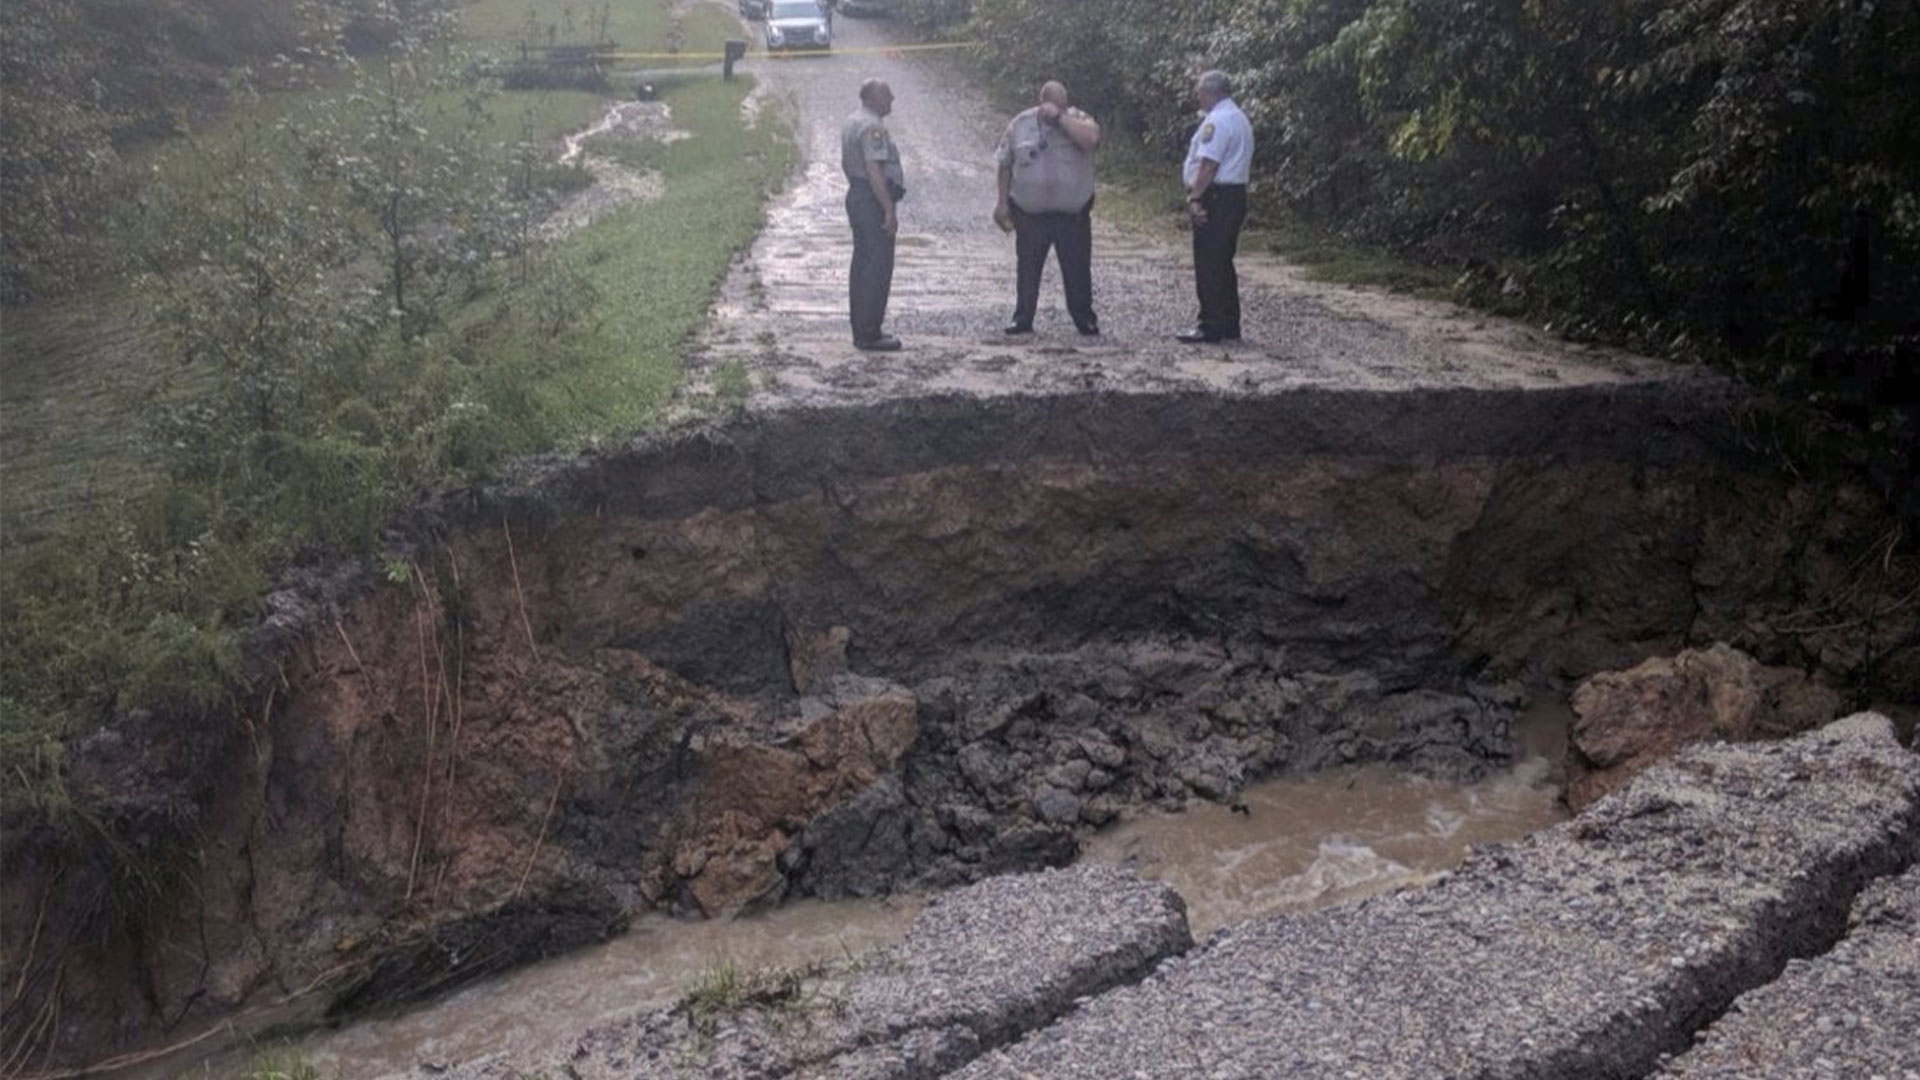 Hurricane Florence Washed Out Road